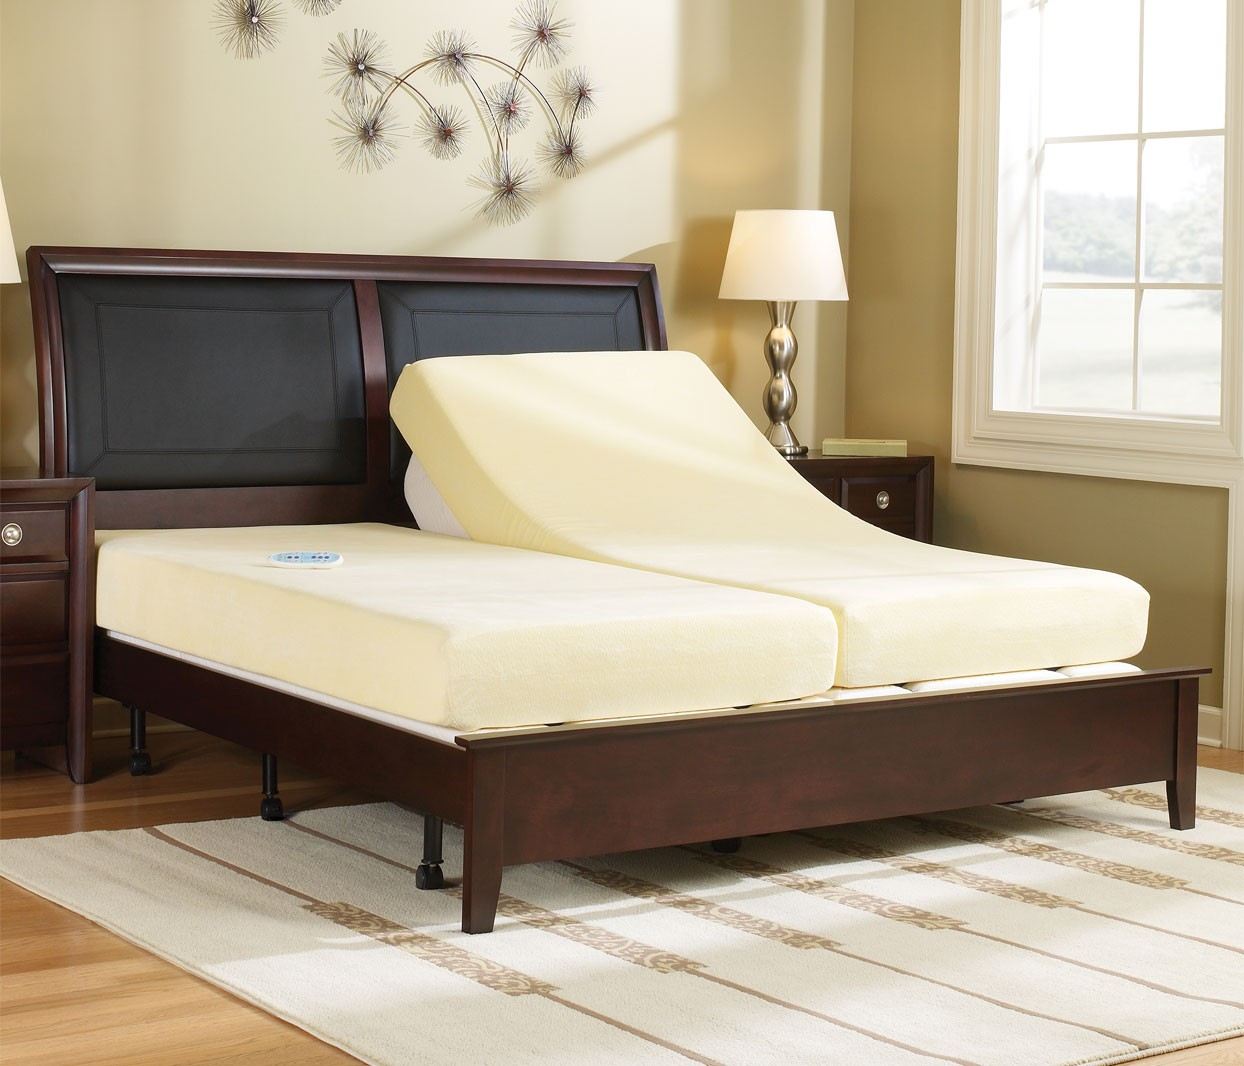 Trends that can help mattress retailers increase sales and profits sell more beds Bed with mattress